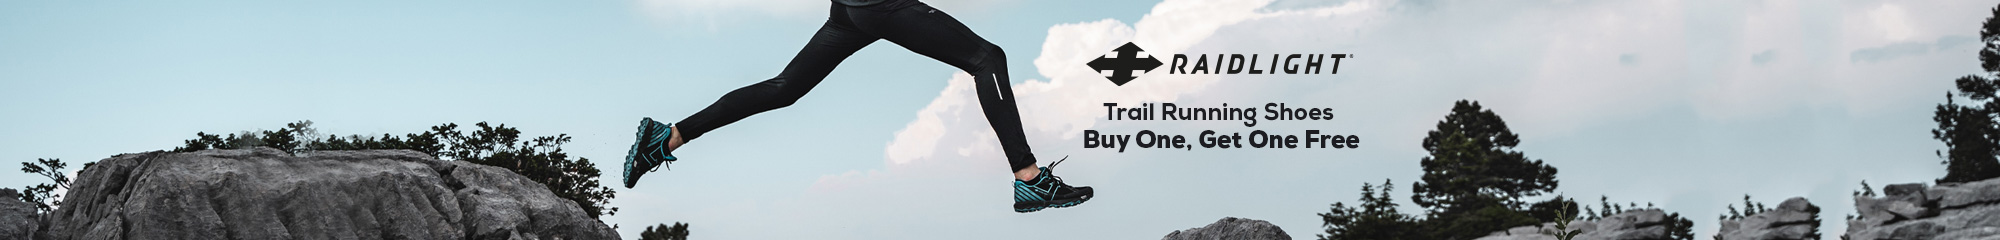 raidlight trail running shoes bogo free